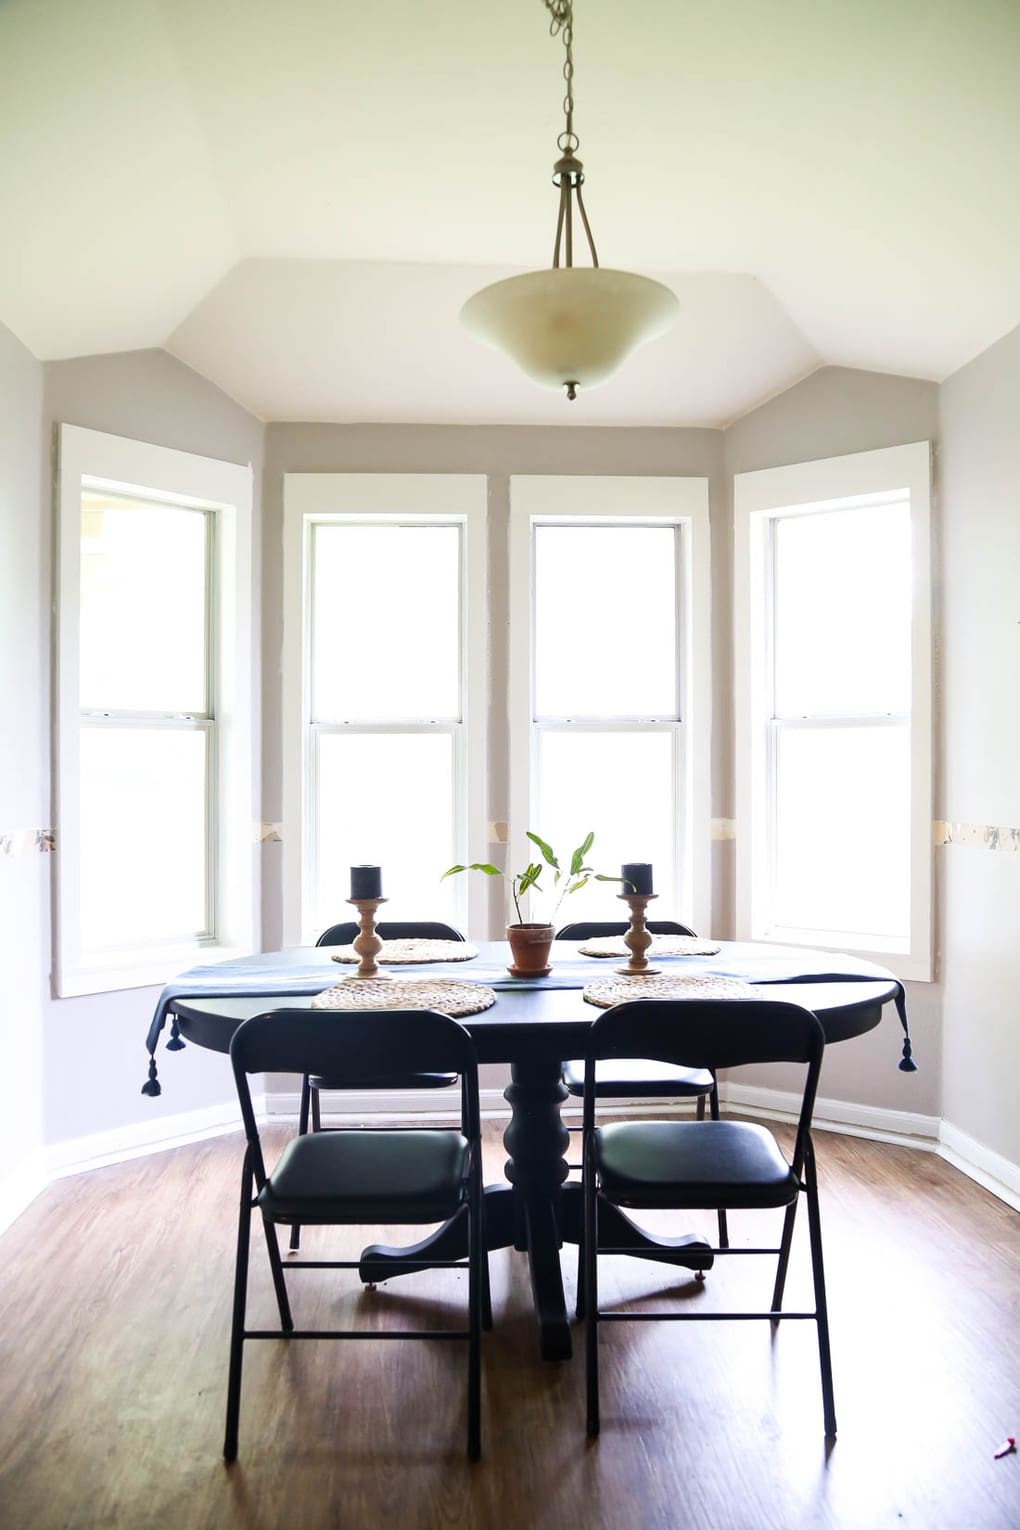 DIY window trim in bay window of dining room